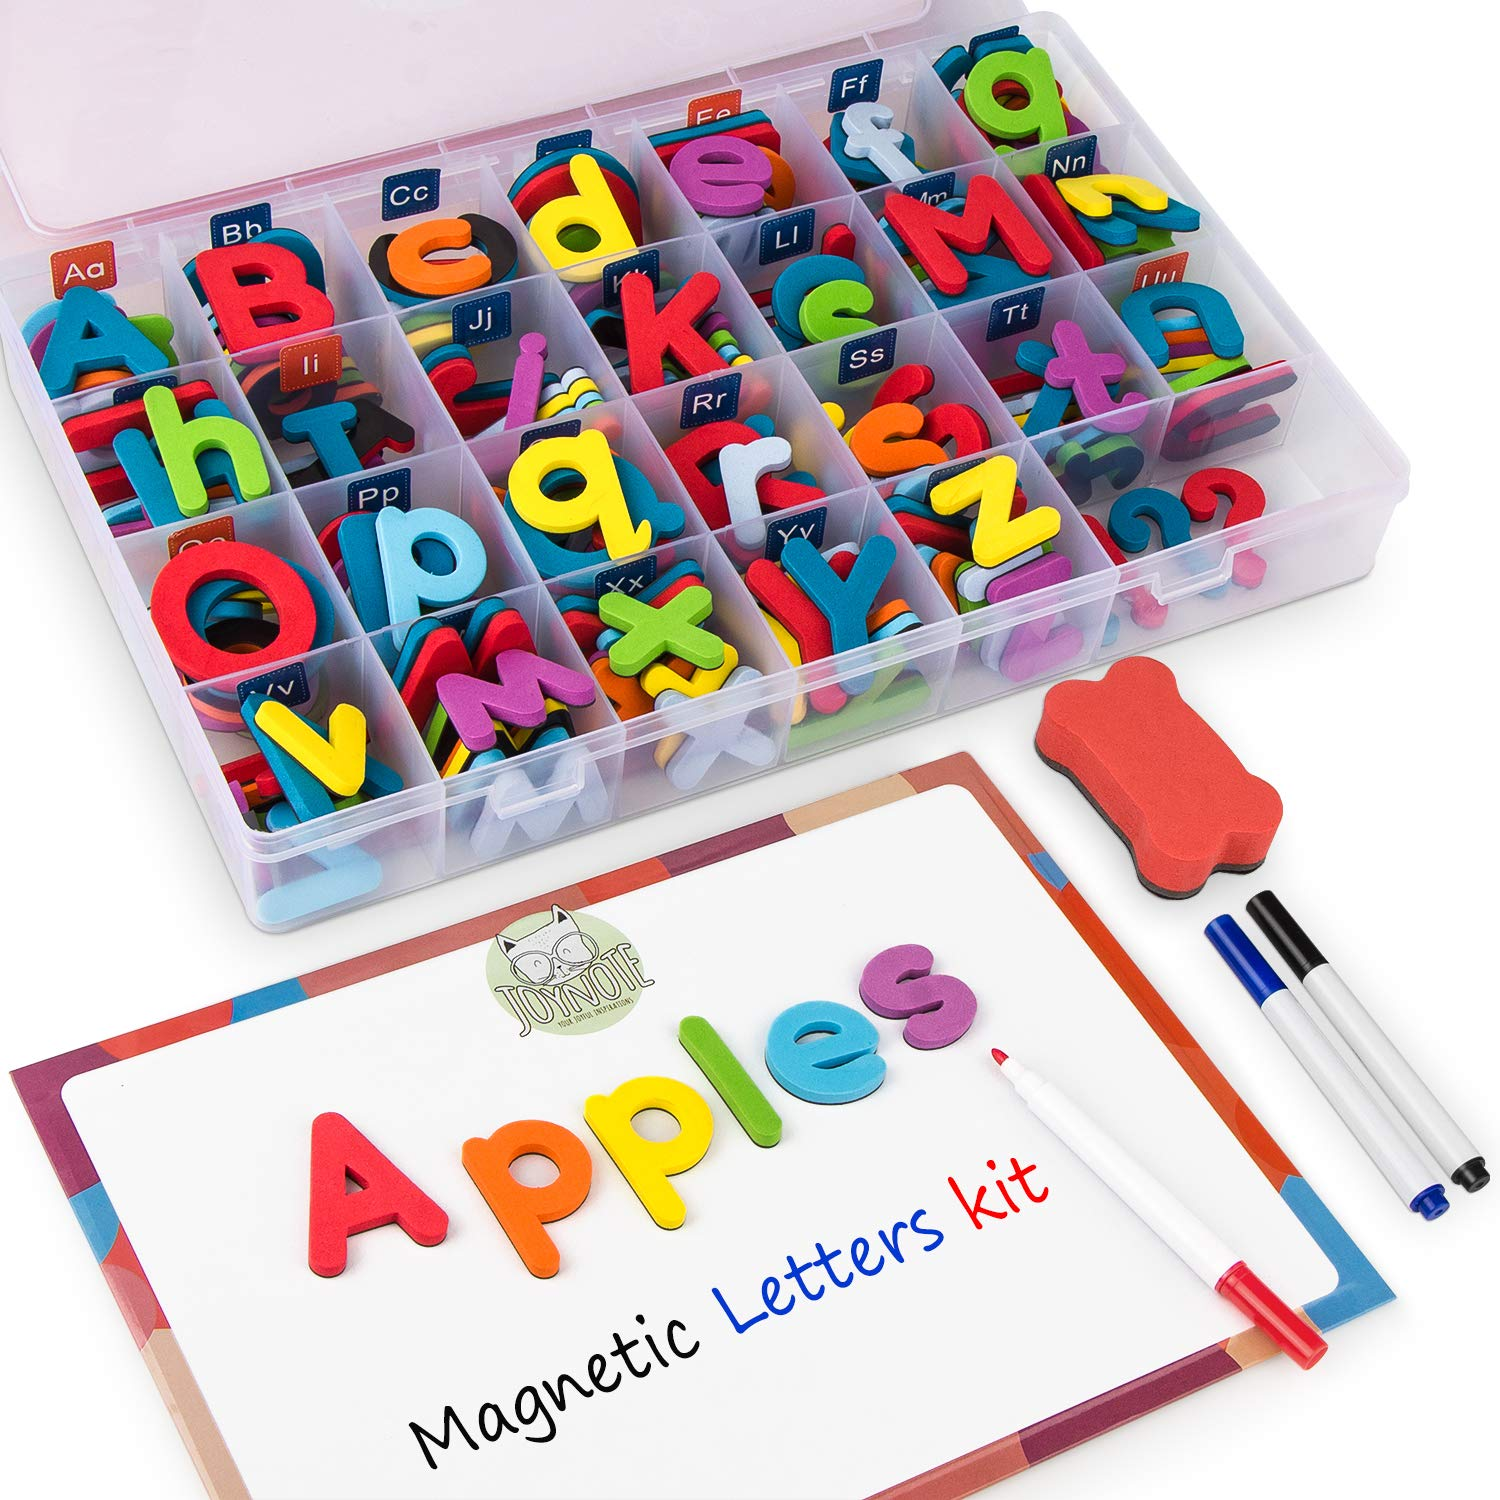 Gamenote Classroom Magnetic Alphabet Letters Kit with Double-Side Magnet Board - Foam Alphabet Letters for Preschool Kids Toddler Spelling and Learning(208pcs in Box) Colorful